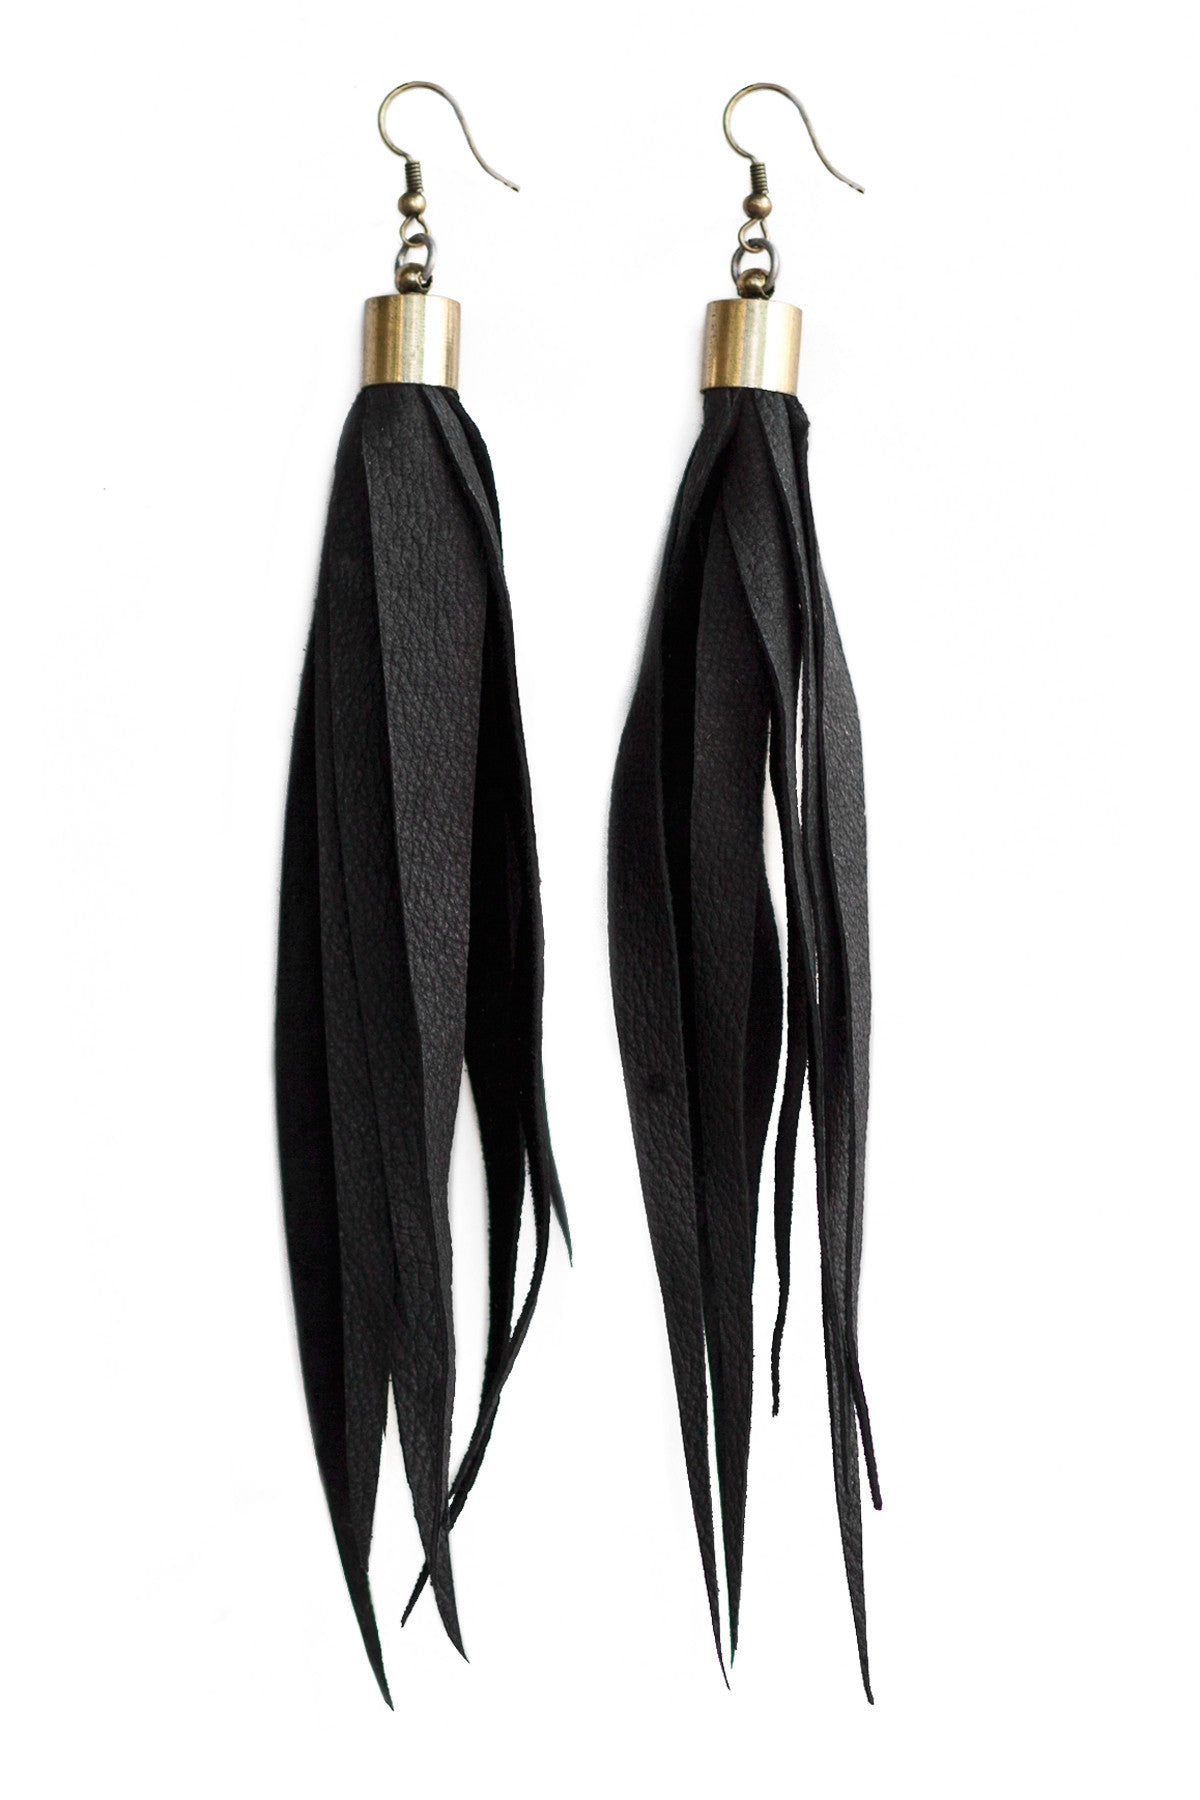 Stalactite Earrings - JAKIMAC